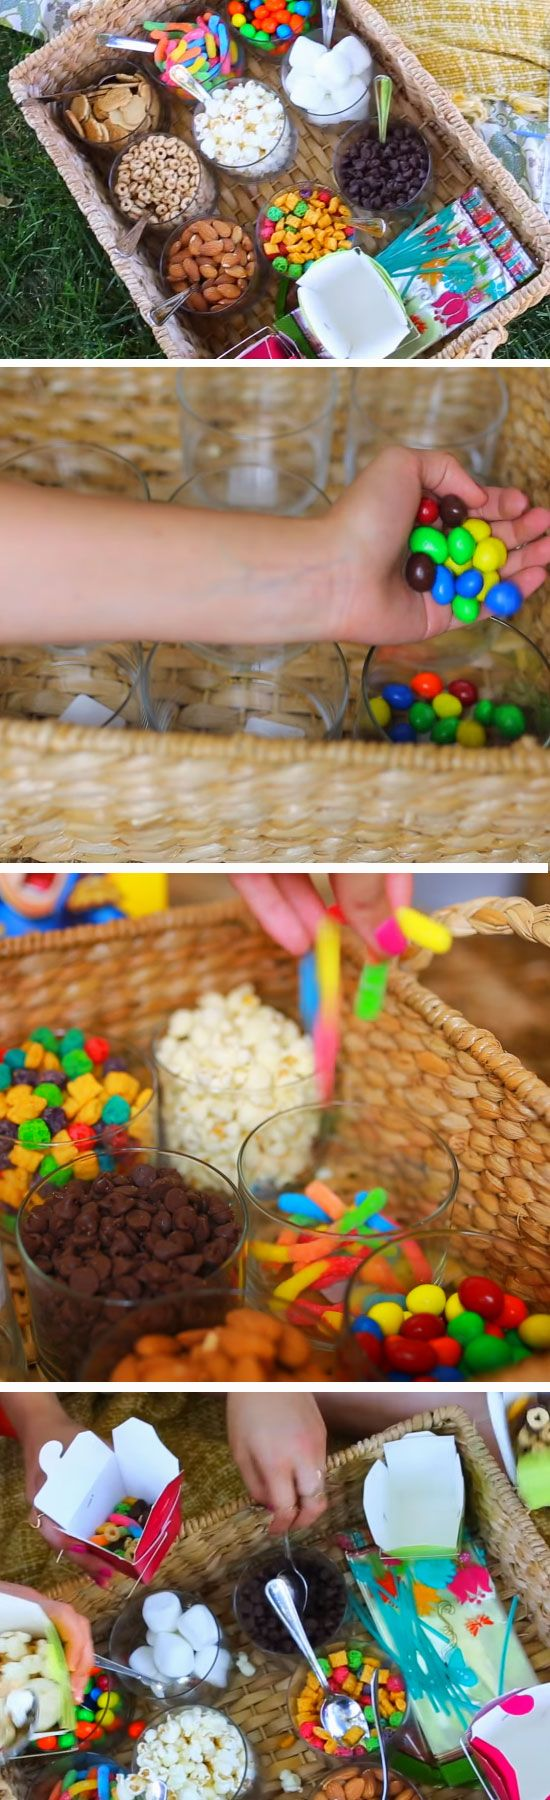 19 DIY Movie Date Night Ideas At Home